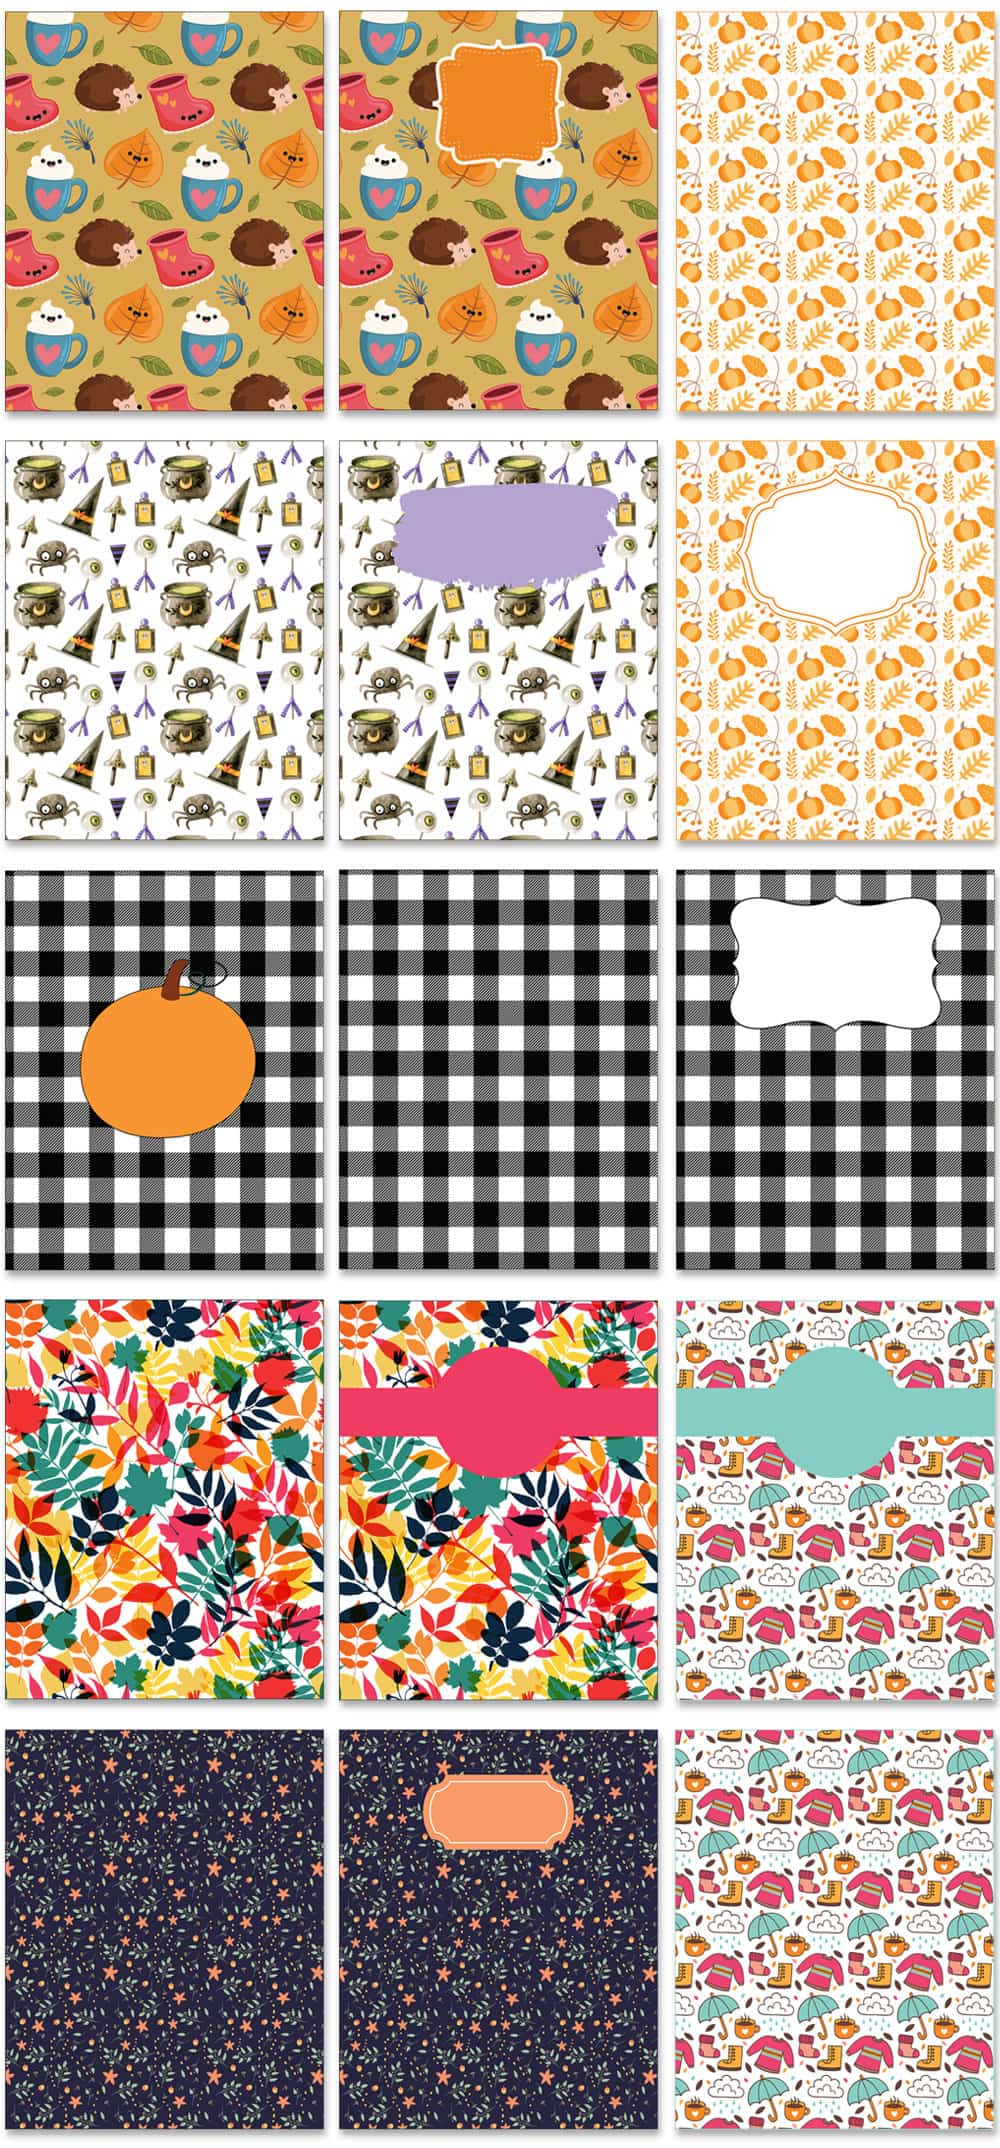 Picture of various fall planner and fall binder covers. There are 15 covers, 3 across and 5 down, in a grid. They have pumpkin designs, witch designs, black and white design, and fall floral colors.